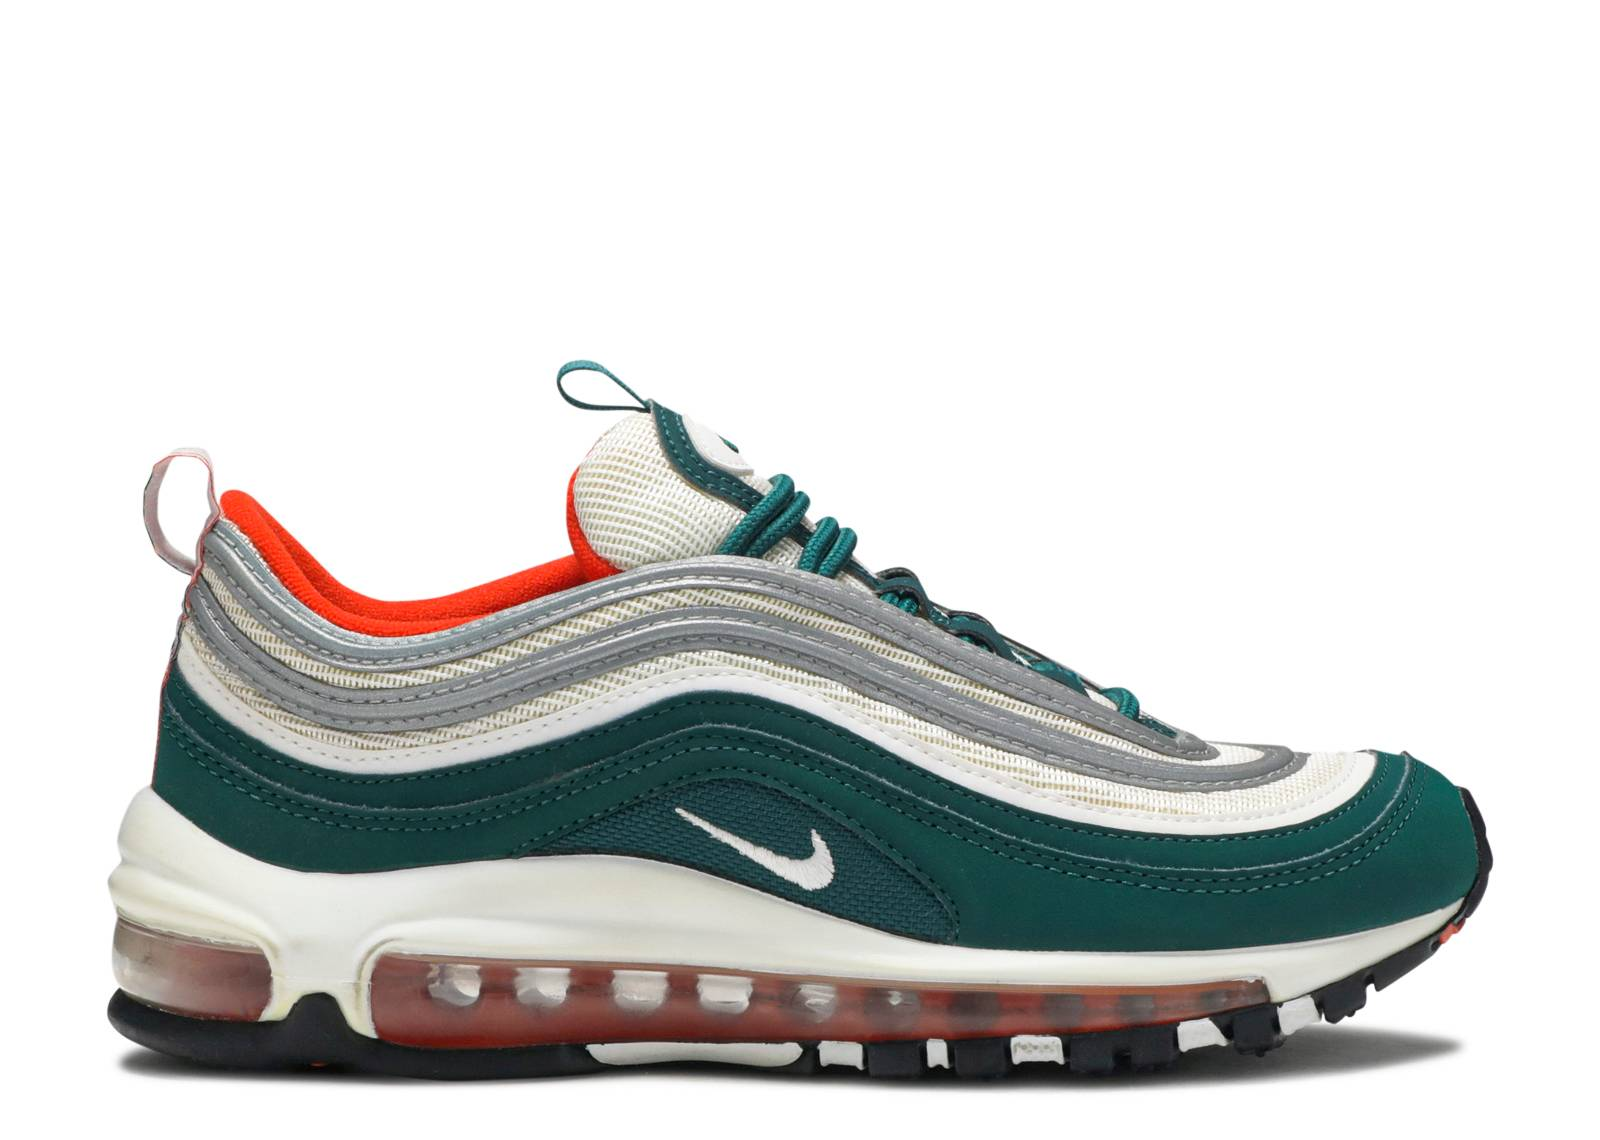 New Men's Nike Air Max 97 Rain Forest Size 12.5